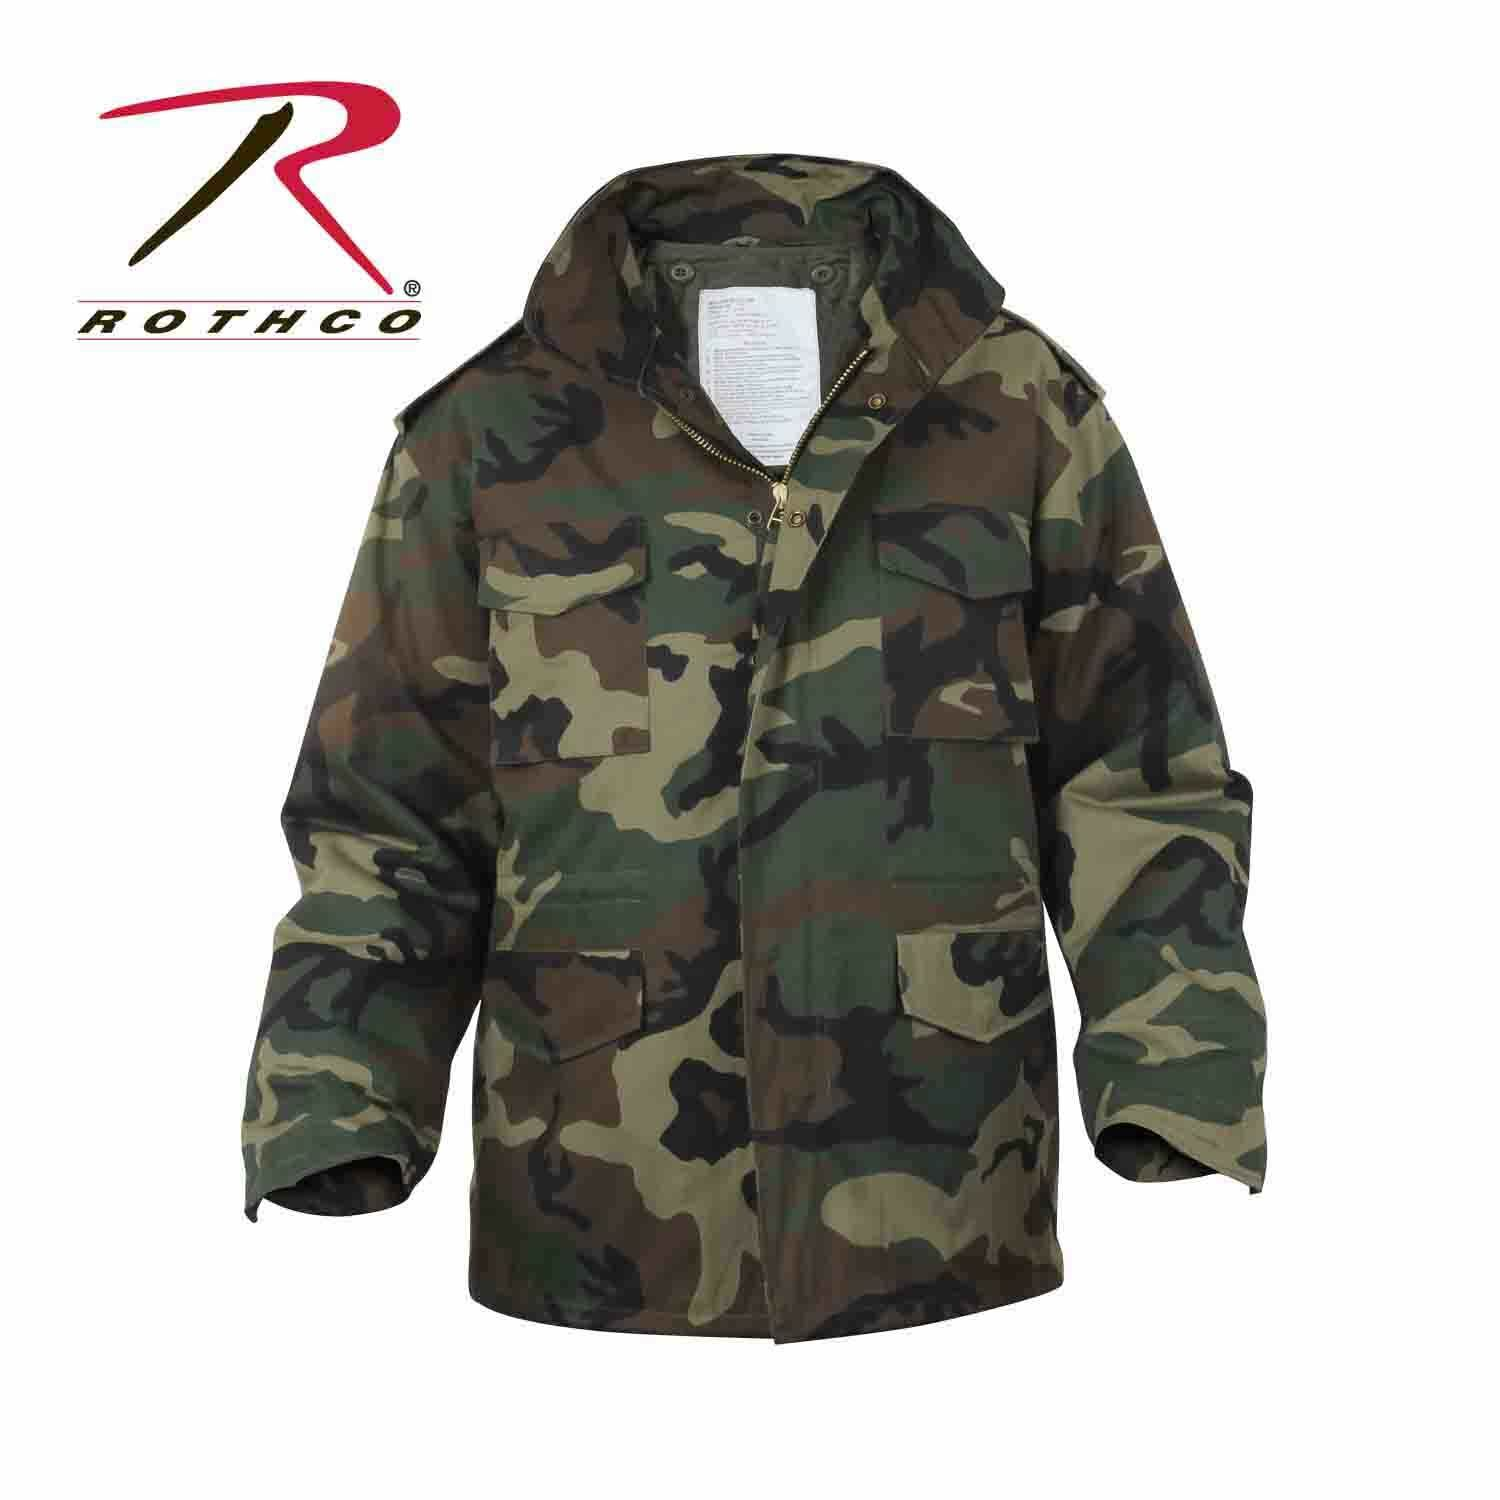 Rothco M65 Field Coat with removeable quilted liner WOODLAND